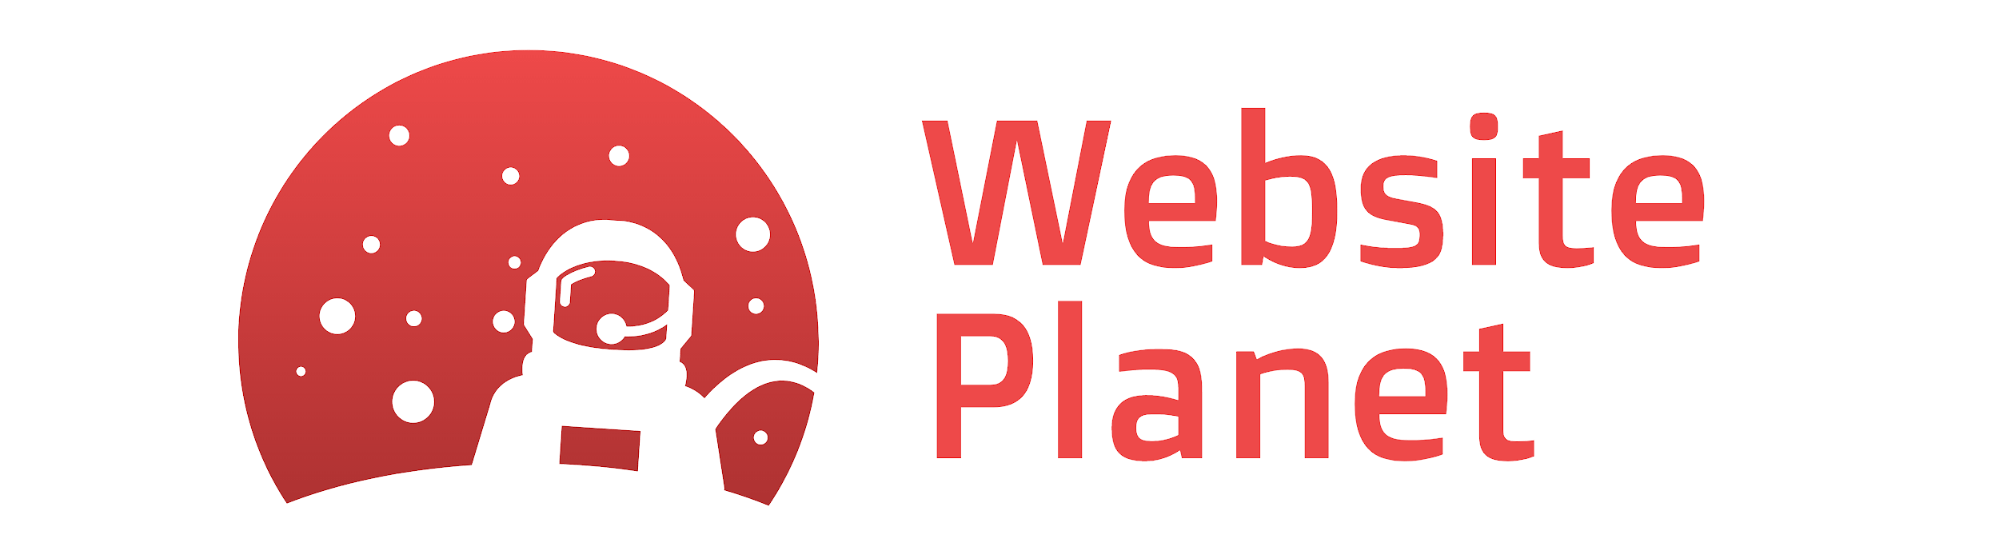 Website Planet logo from DesignEvo